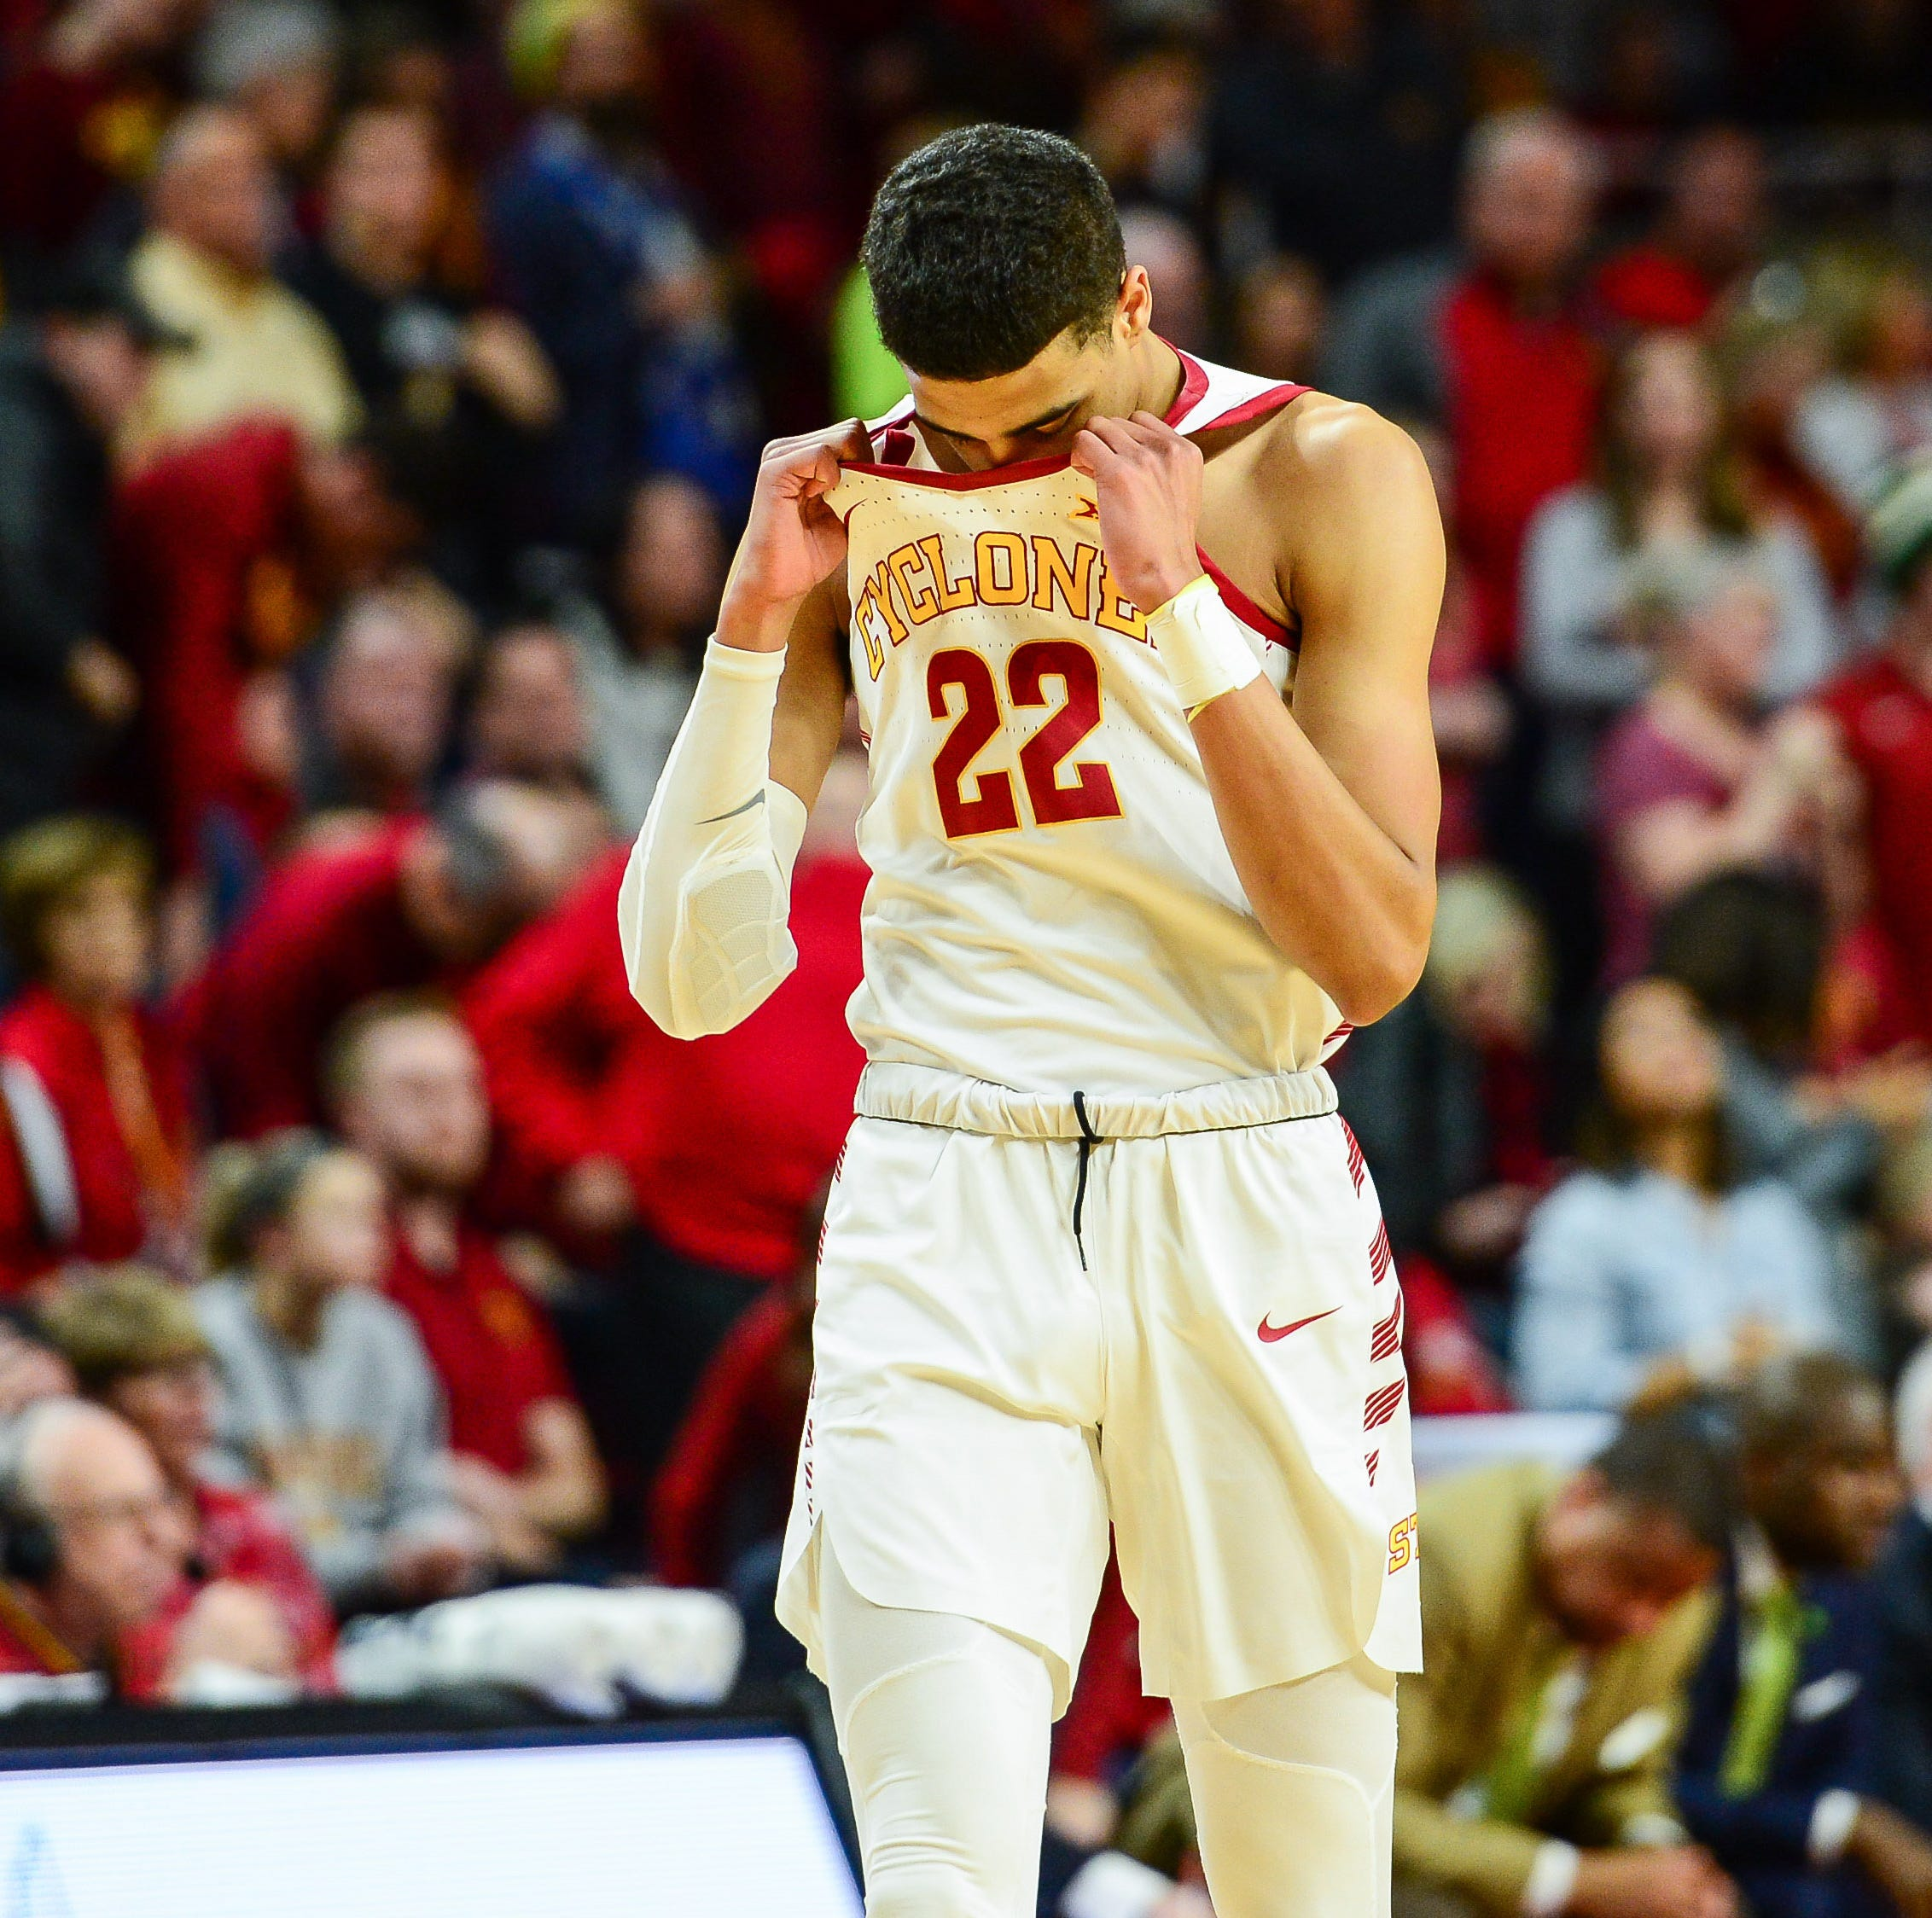 Peterson: Clank ... Iowa State lays an egg at home against TCU